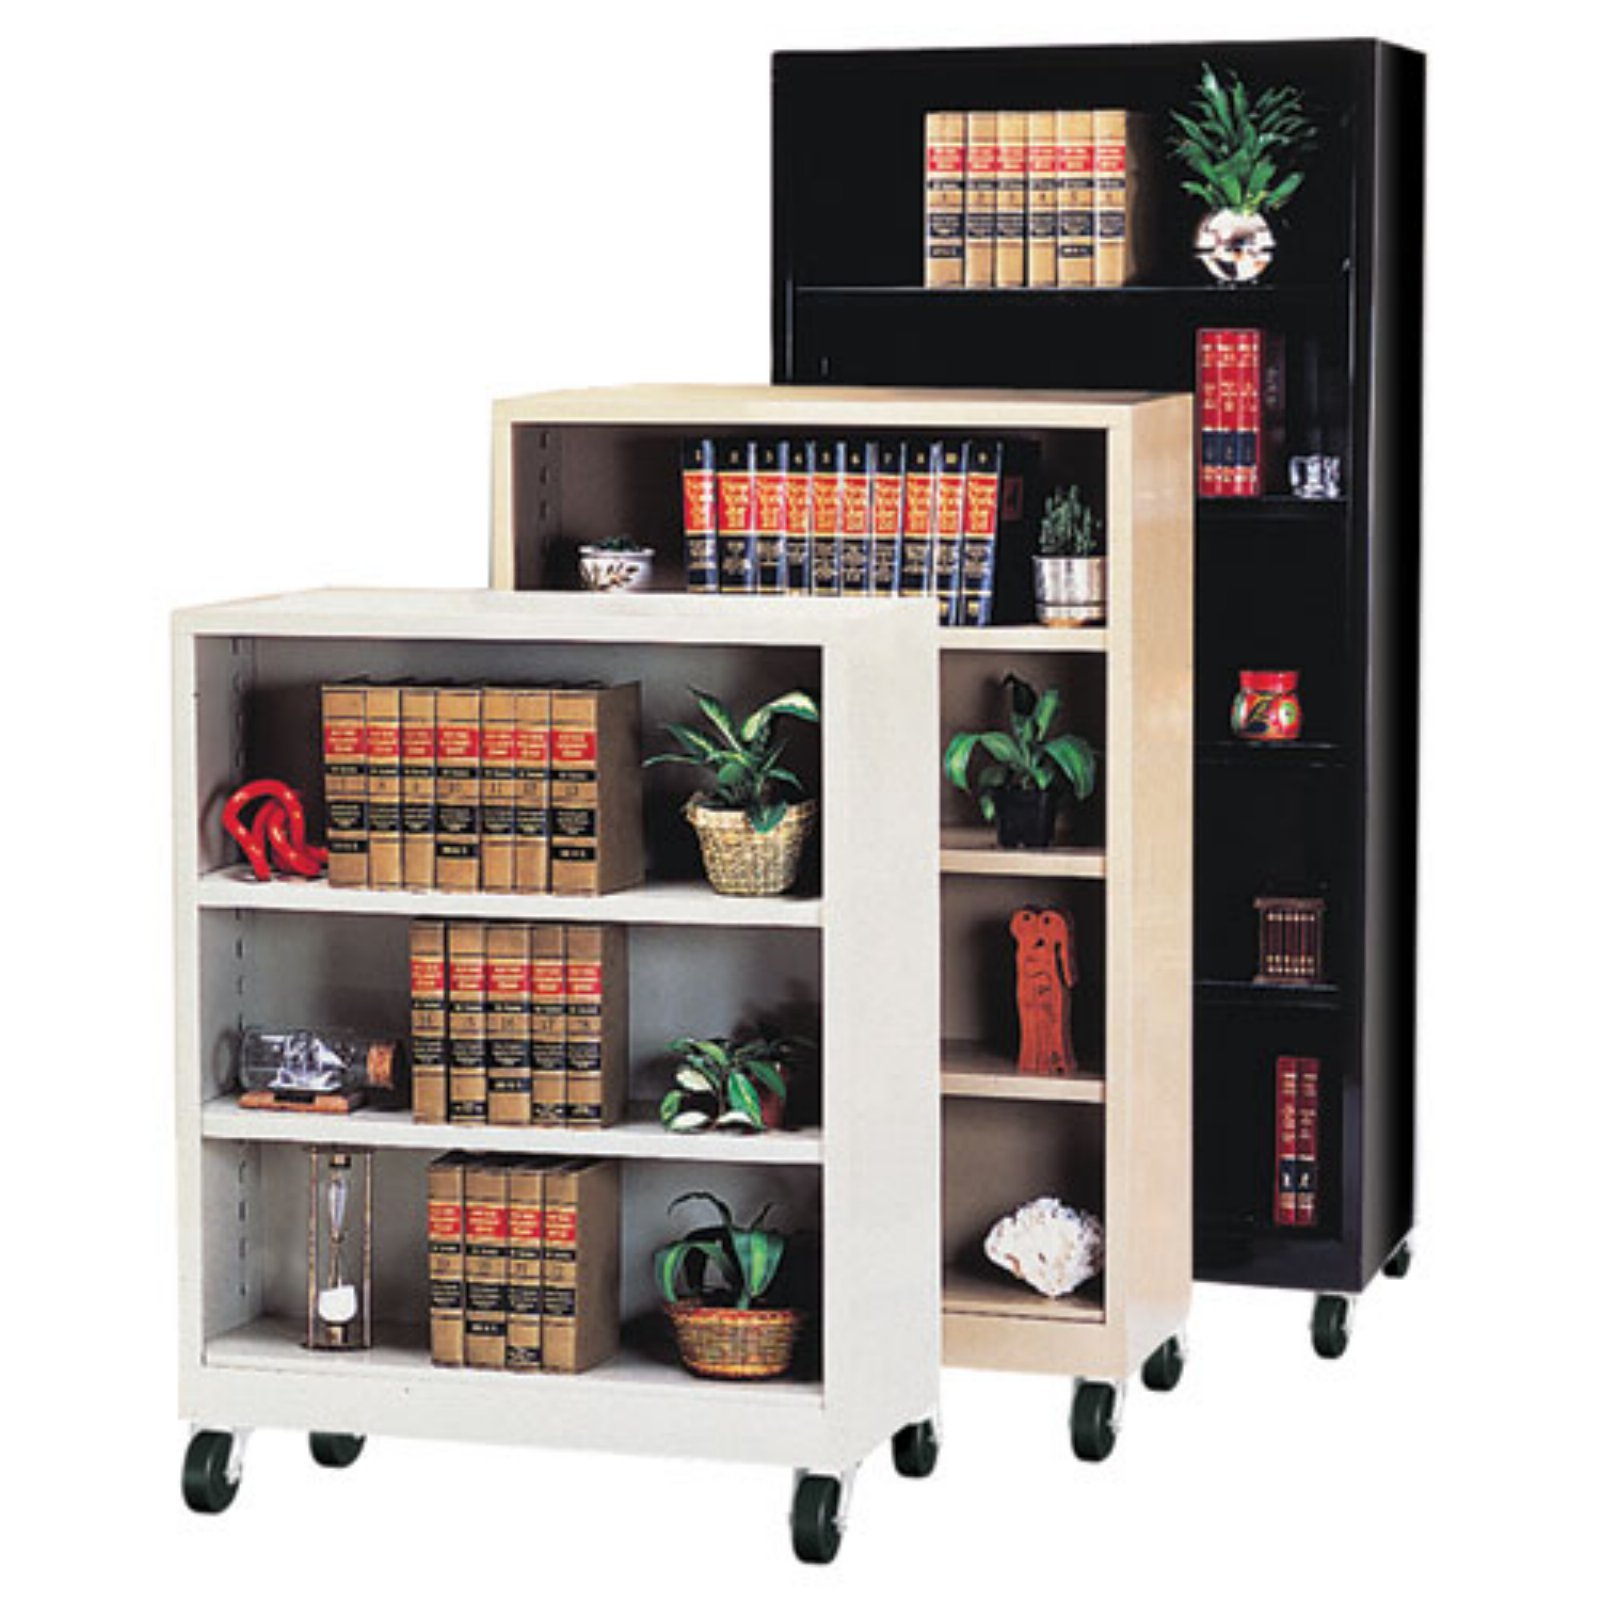 Sandusky Lee Heavy Duty Commercial Mobile Metal Bookcase